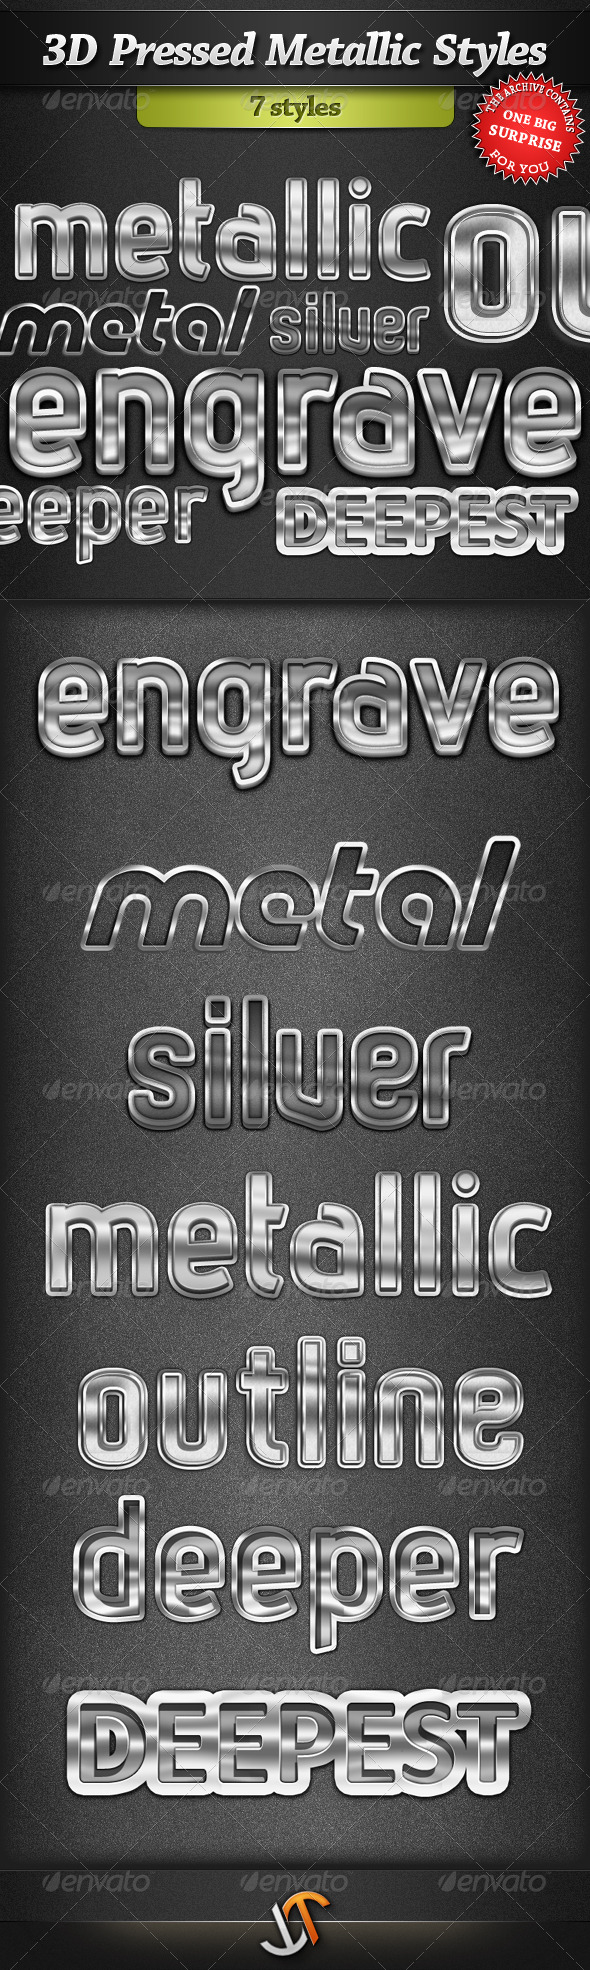 GraphicRiver 3D Pressed Metallic Text Styles 242578